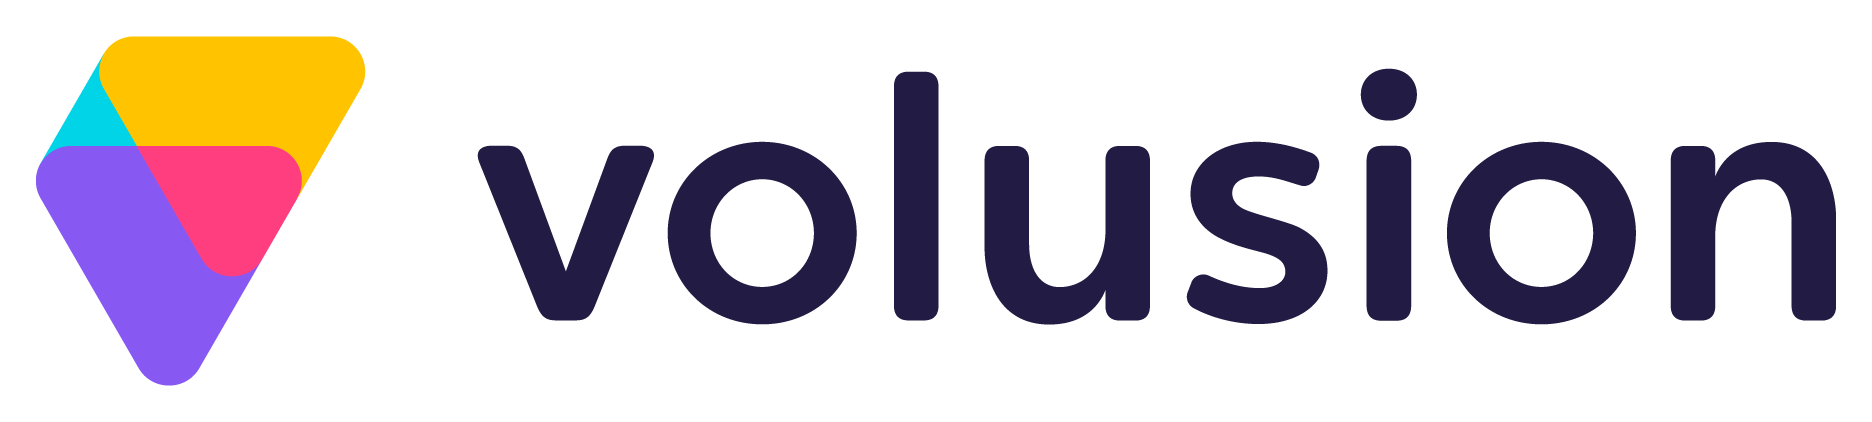 Volusion new logo.png